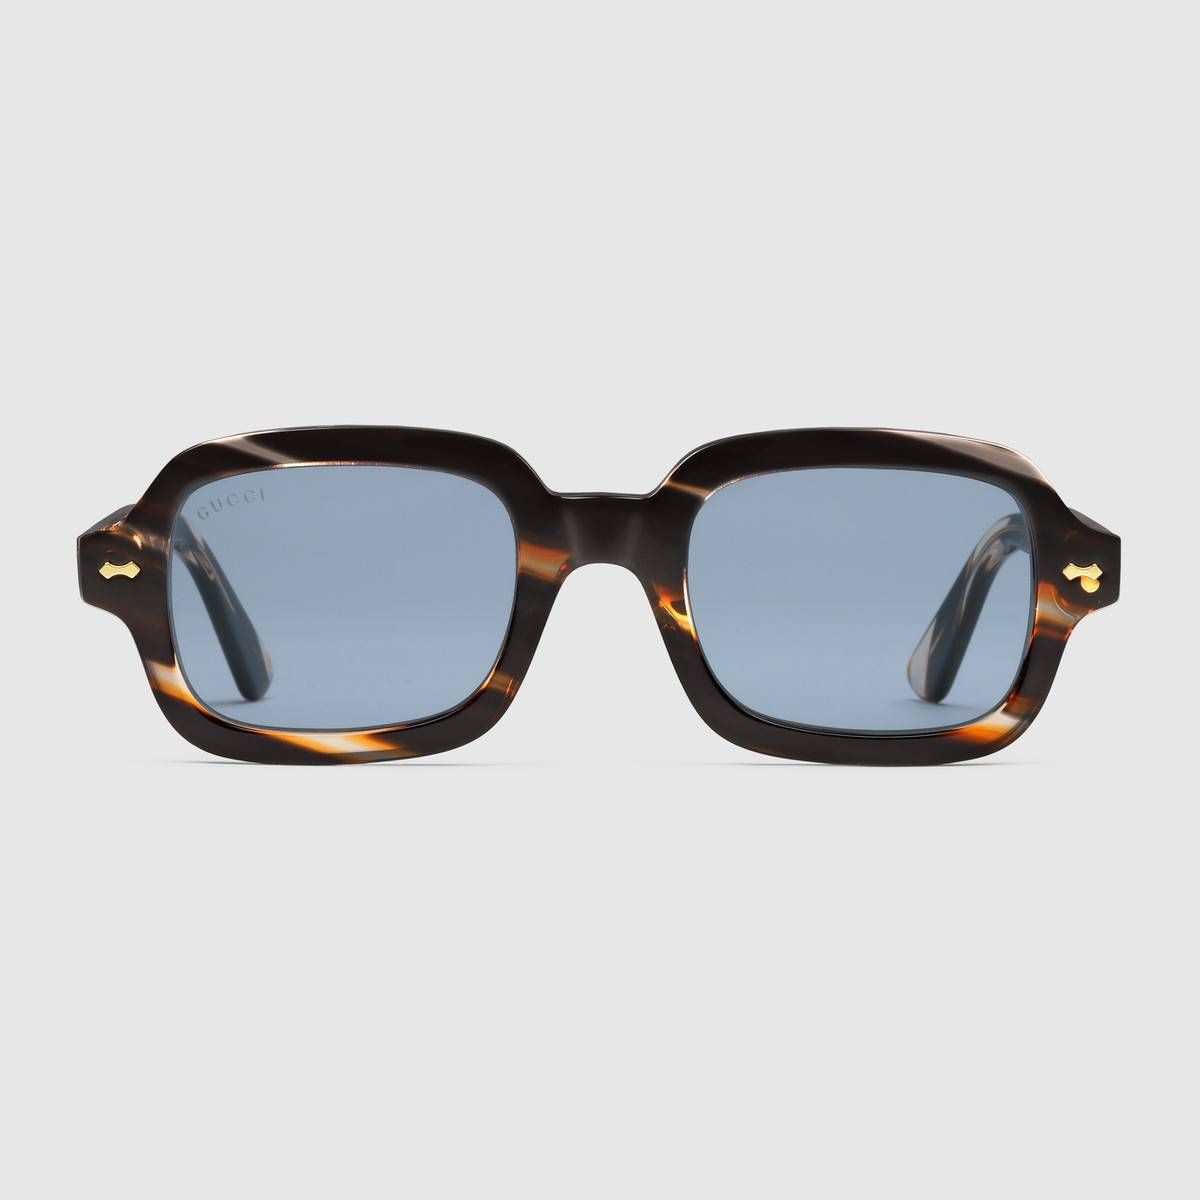 ed90fba73fc Rectangular-frame acetate glasses in Striped tortoiseshell acetate frame